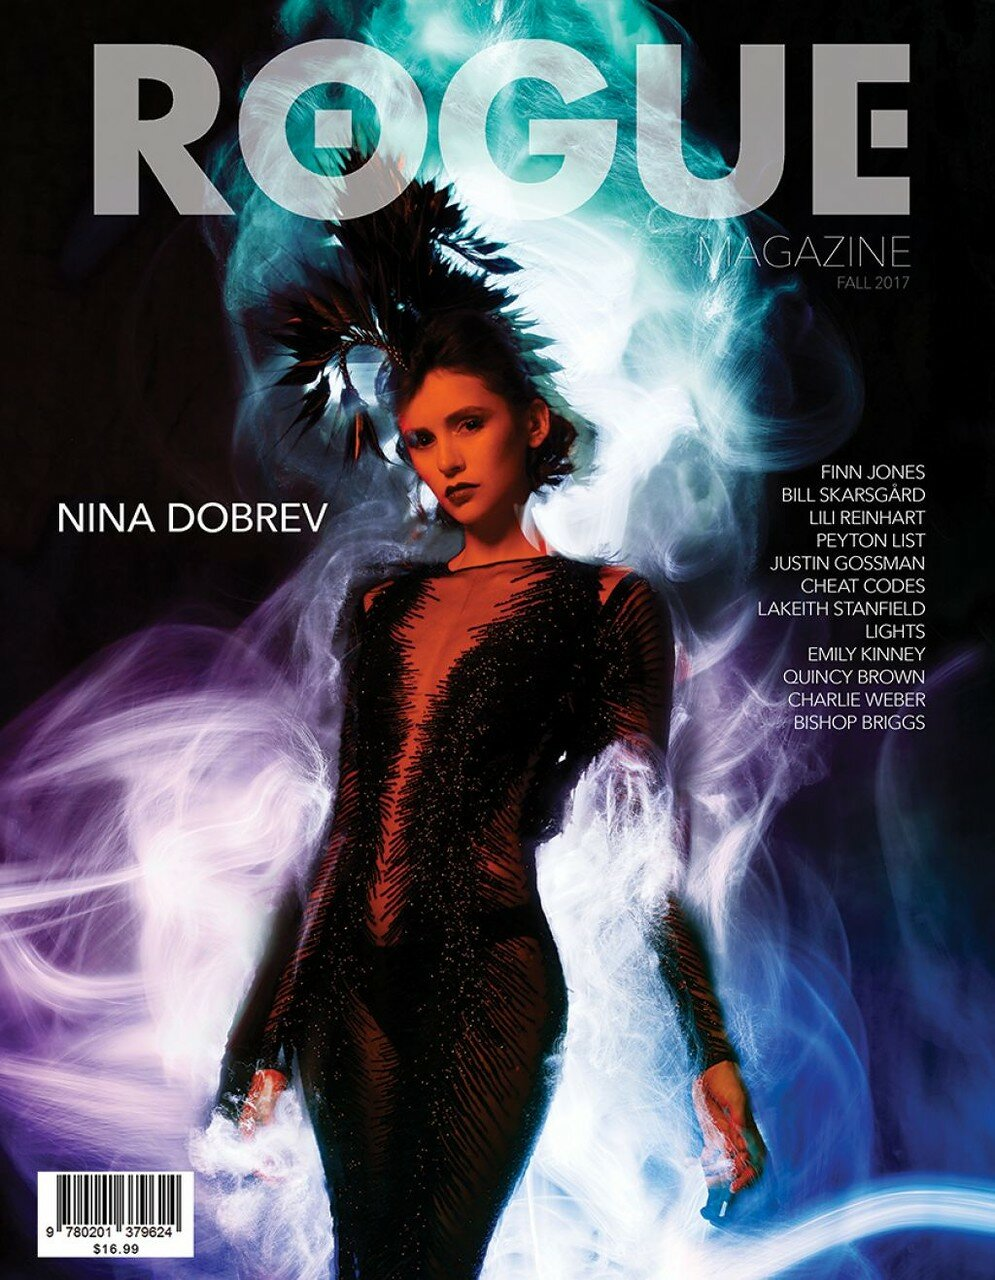 nina-dobrev-rogue-magazine-issue-n-7-2.jpg